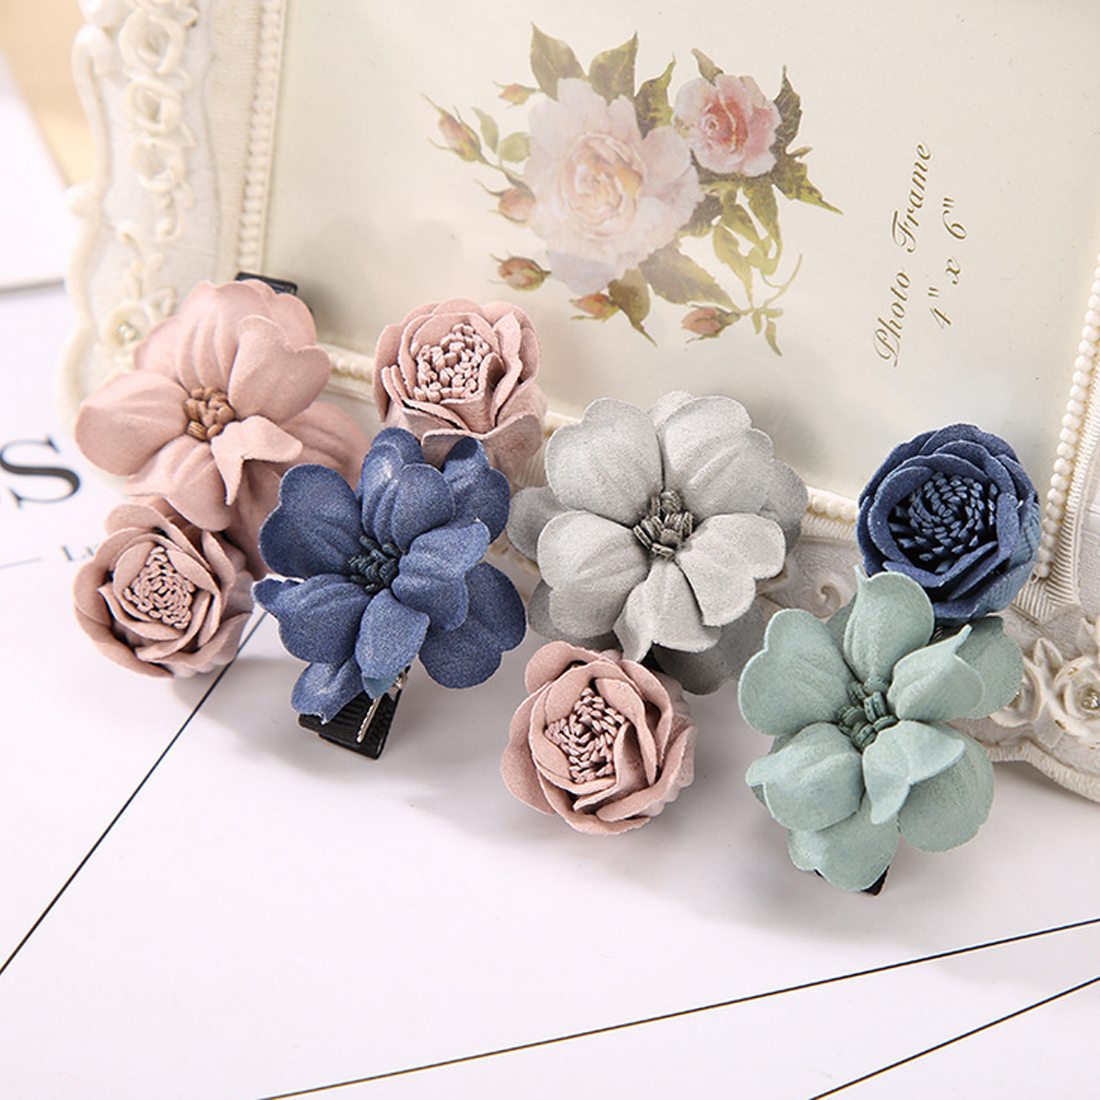 Charming Flower Embossed Simulation 3D Hairpins Beauty Hair Accessories For Women Girls Elegant Hairgrips Hair Clip